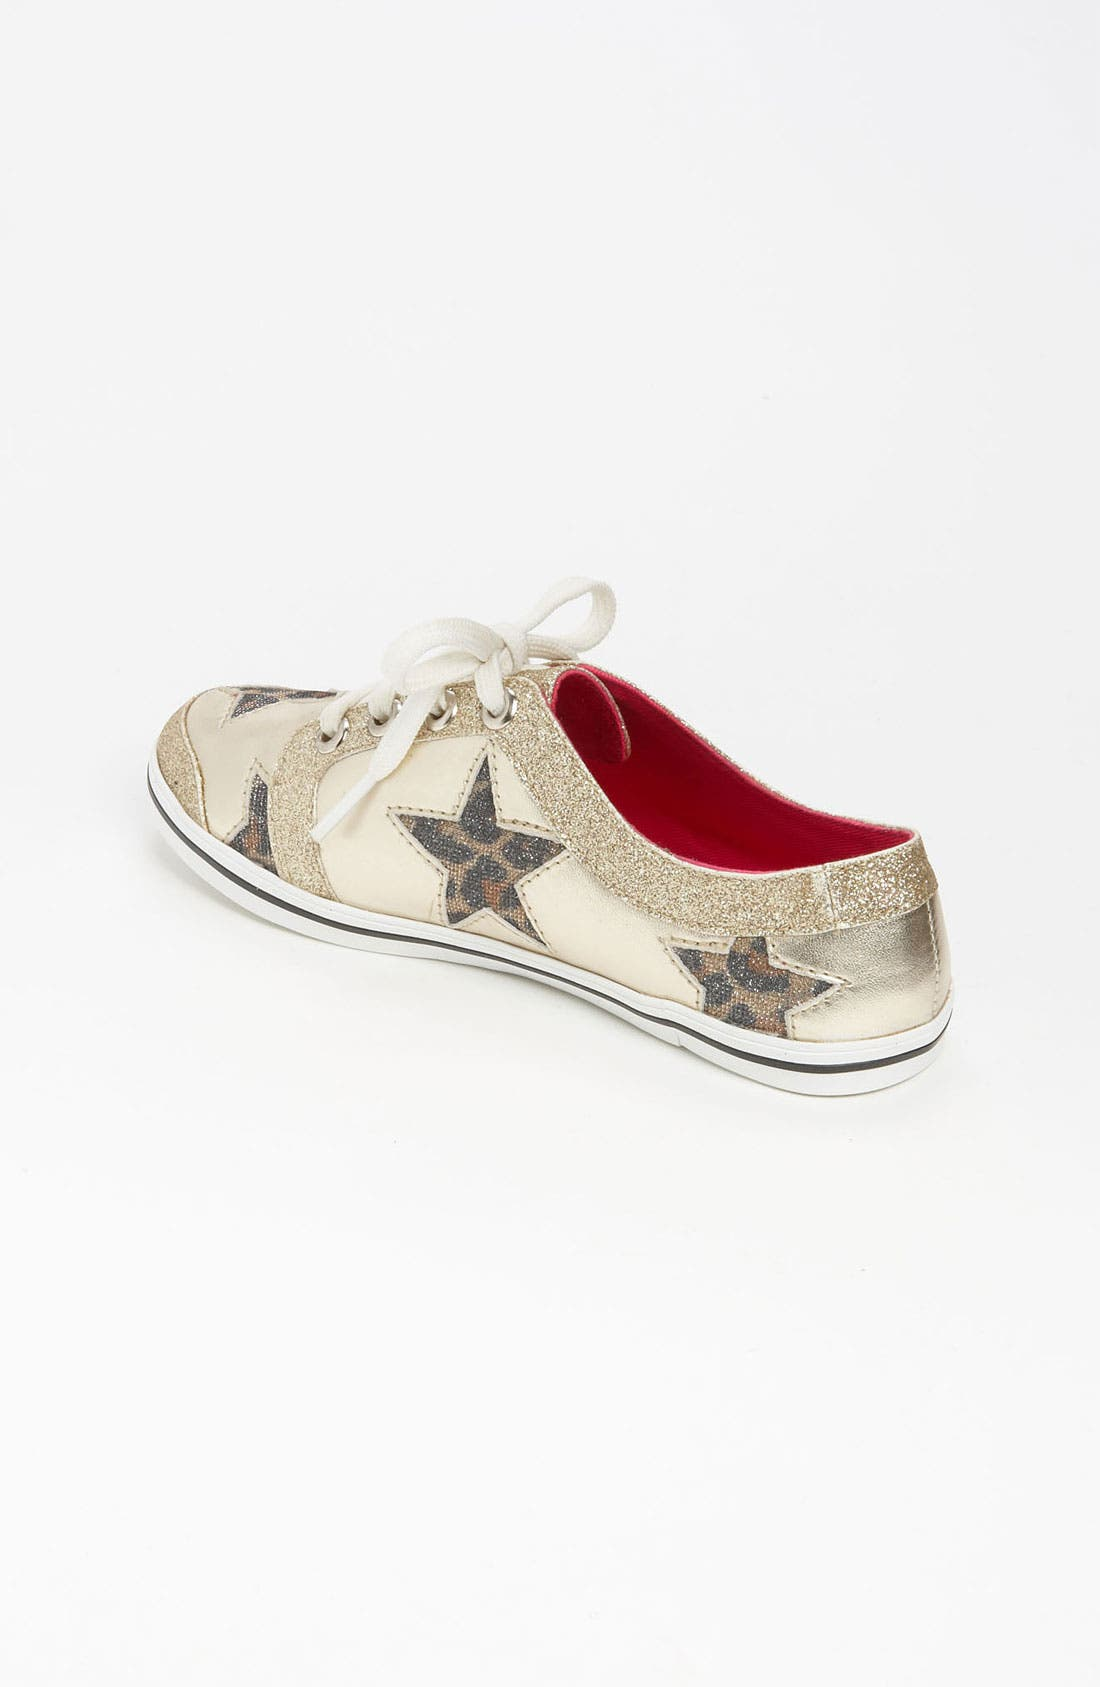 Alternate Image 2  - Juicy Couture 'Star' Sneaker (Toddler, Little Kid & Big Kid)